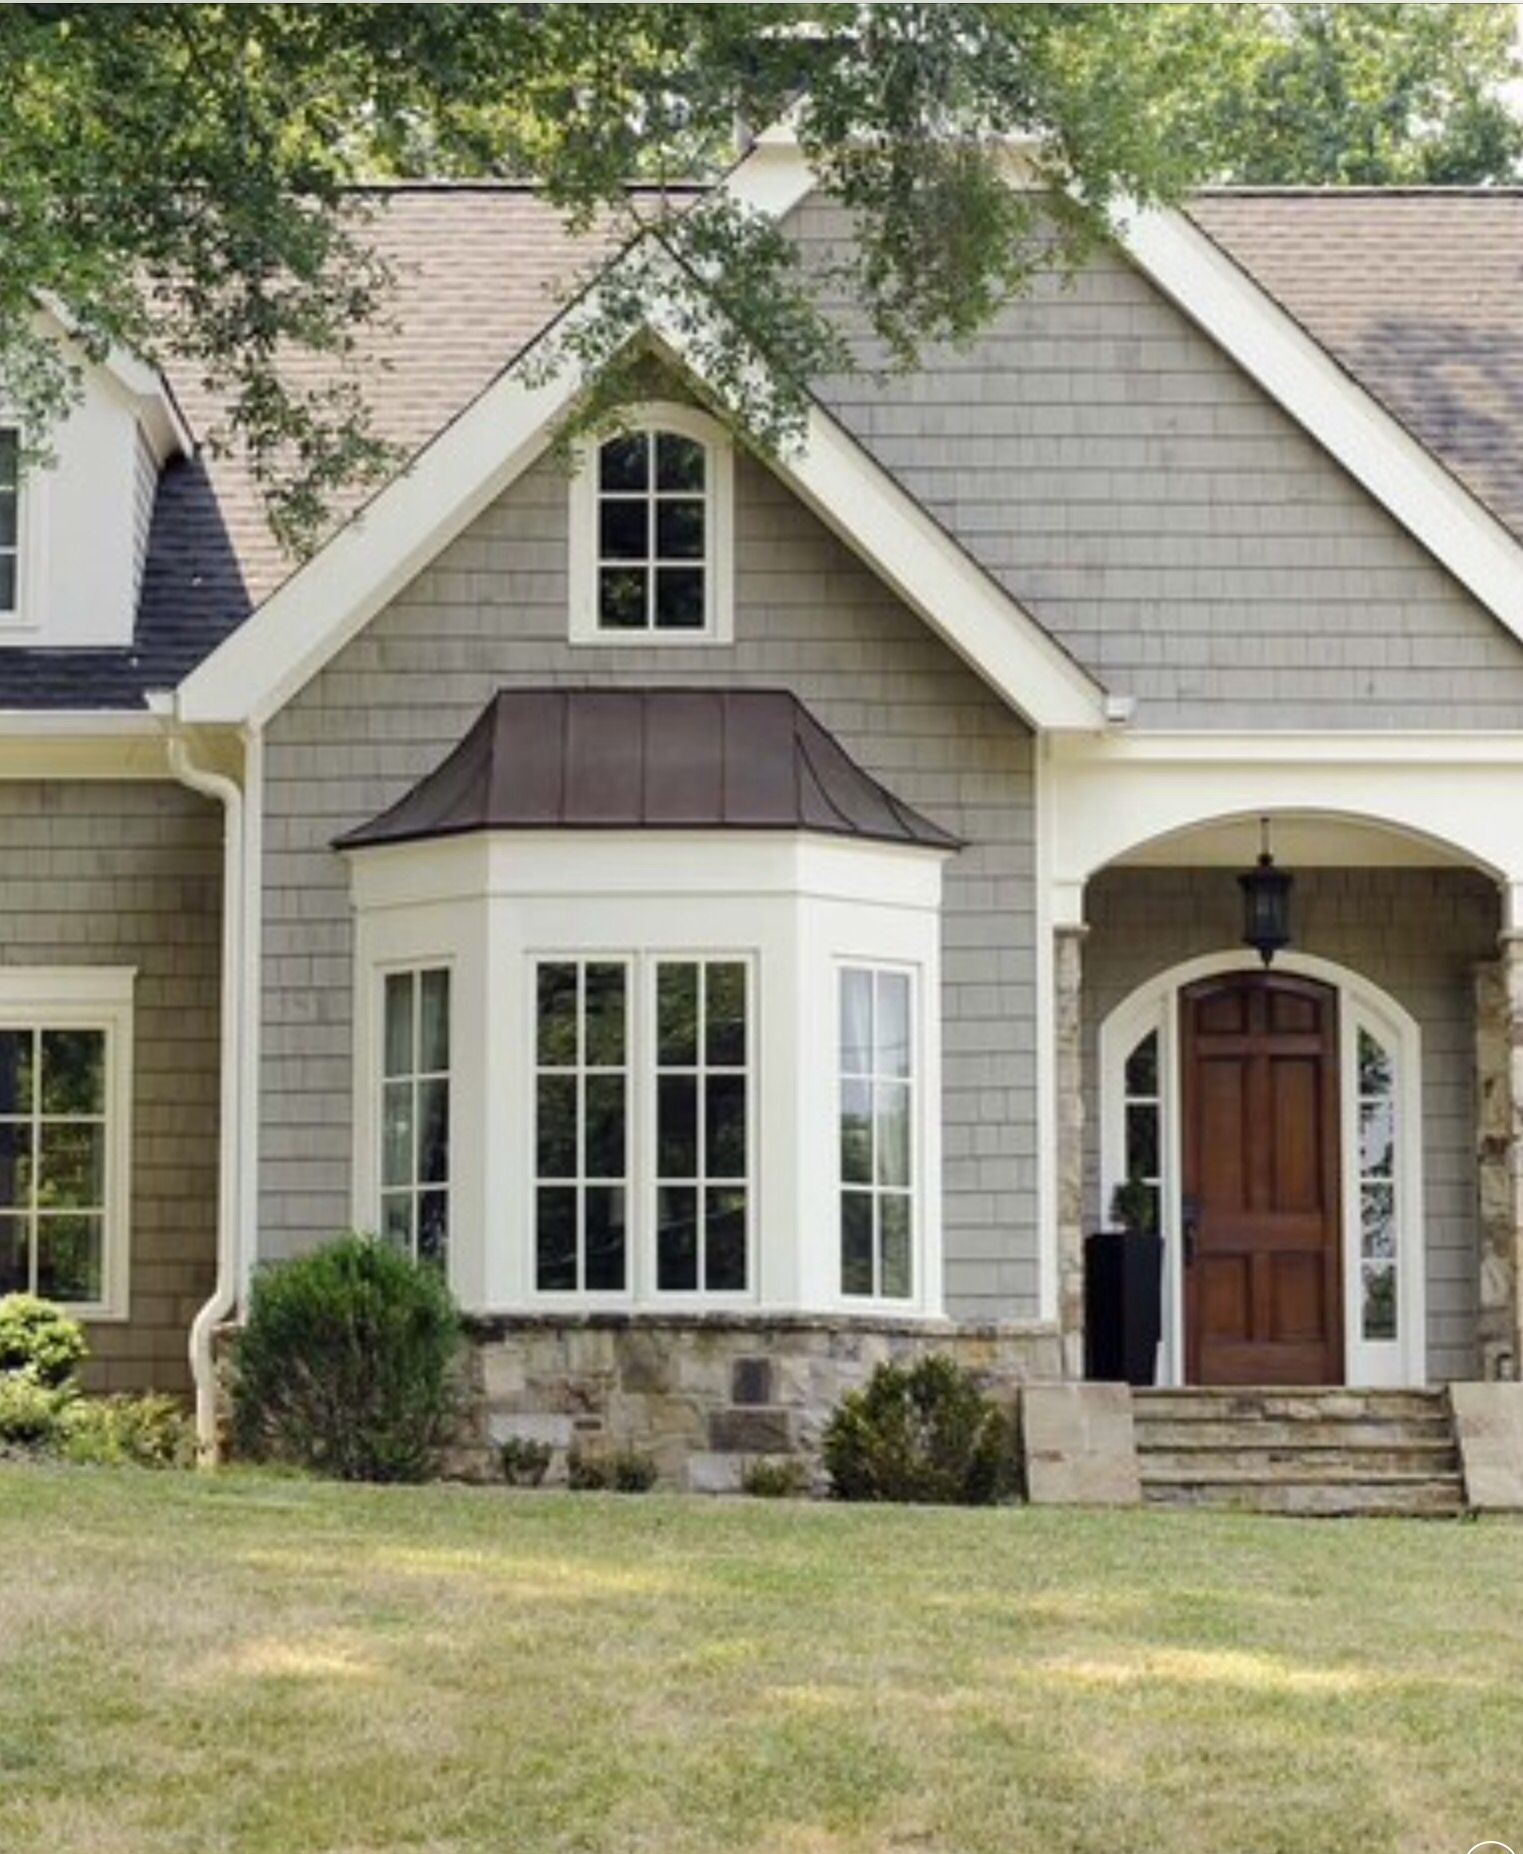 17 Stunning Bay Window Ideas For You And Your Family